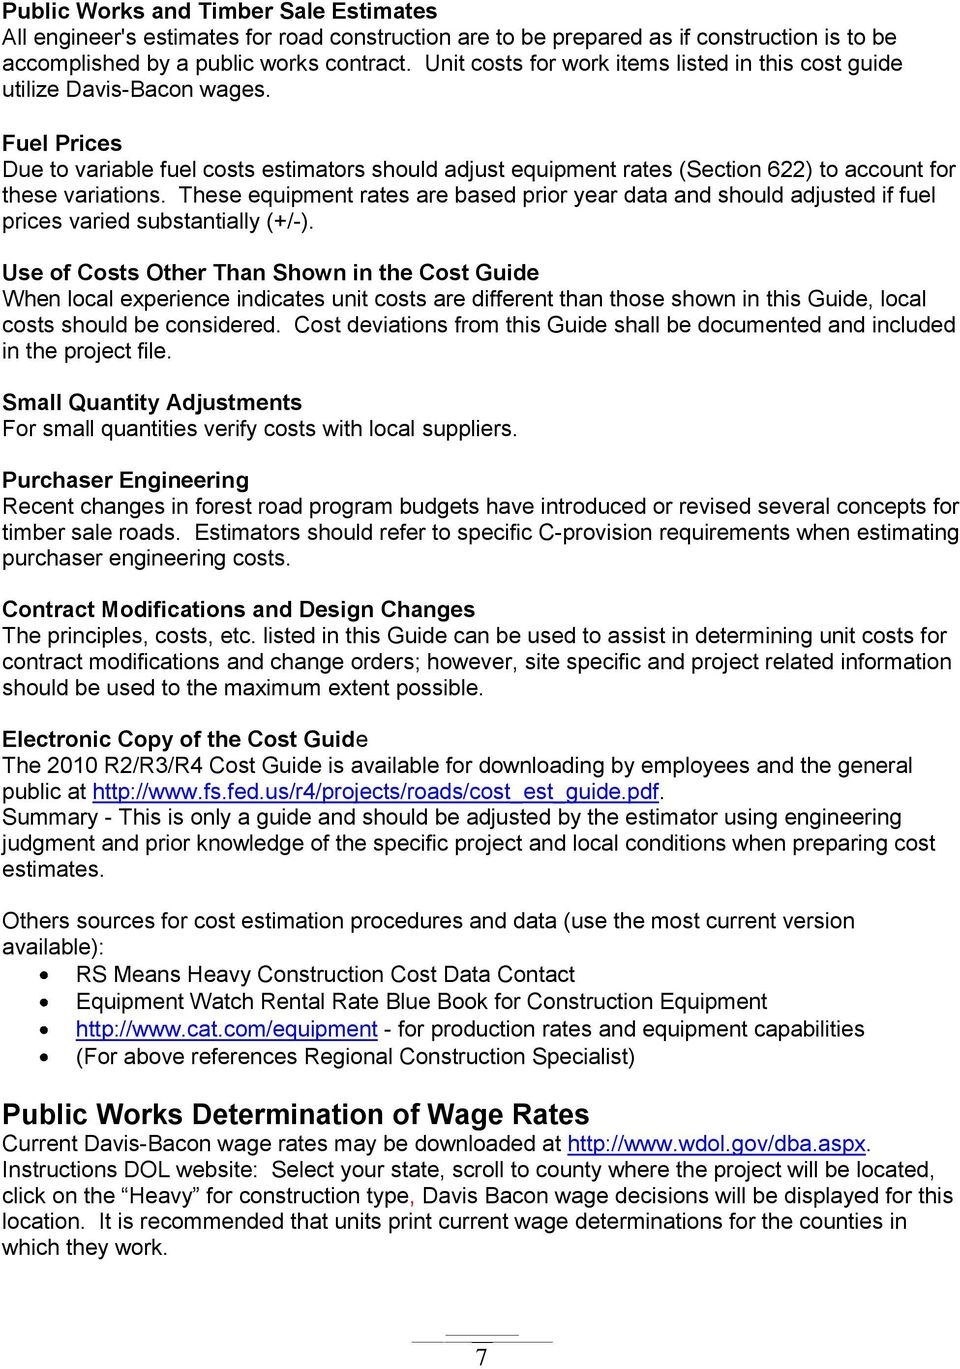 Cost Estimating Guide for Road Construction - PDF